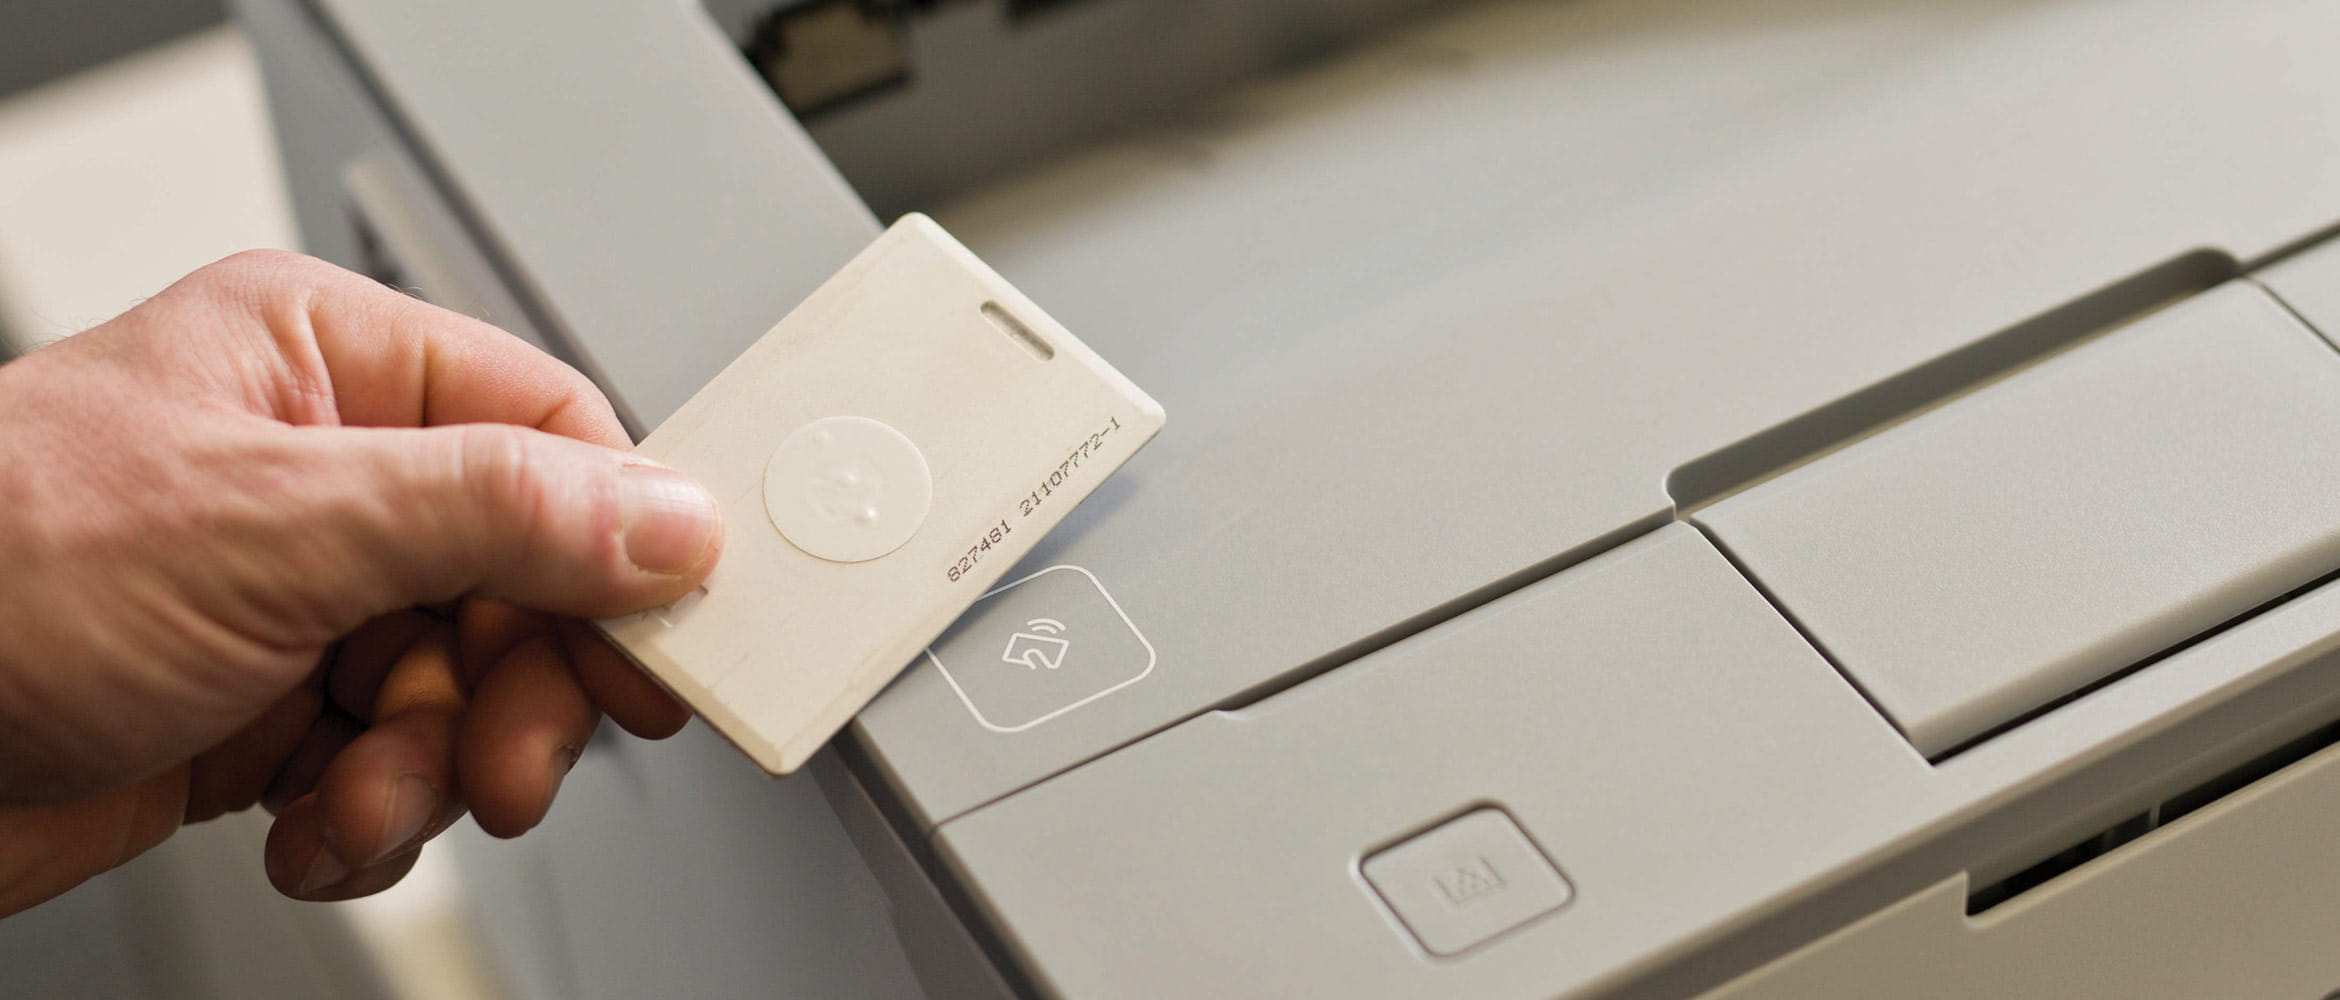 Man scans security chip on Brother printer to utilise